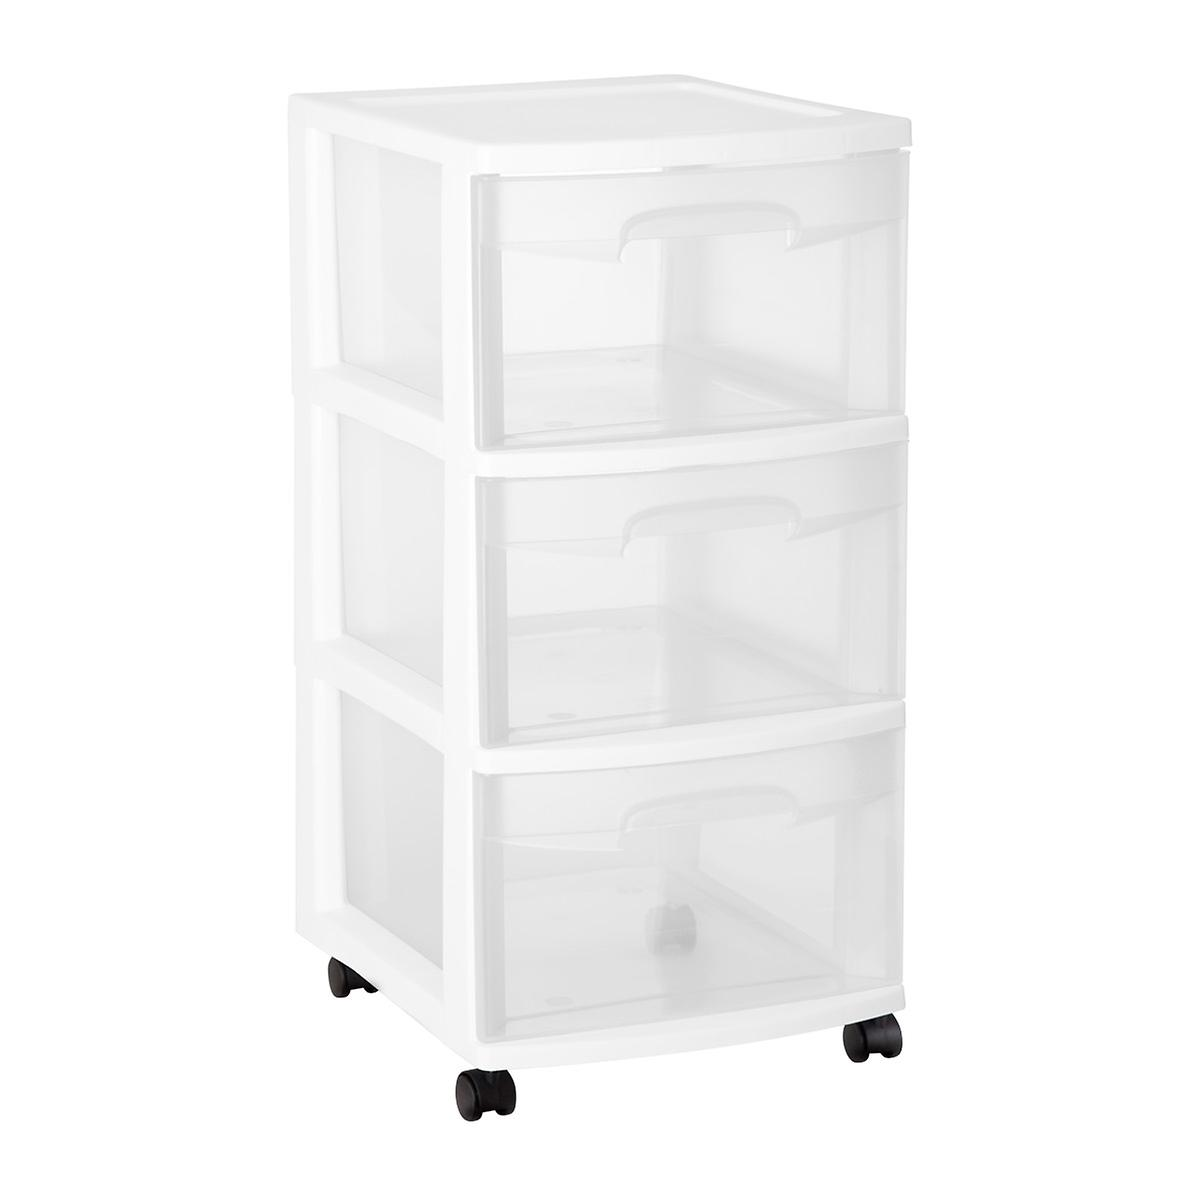 Sterilite 3-Drawer Chest with Wheels